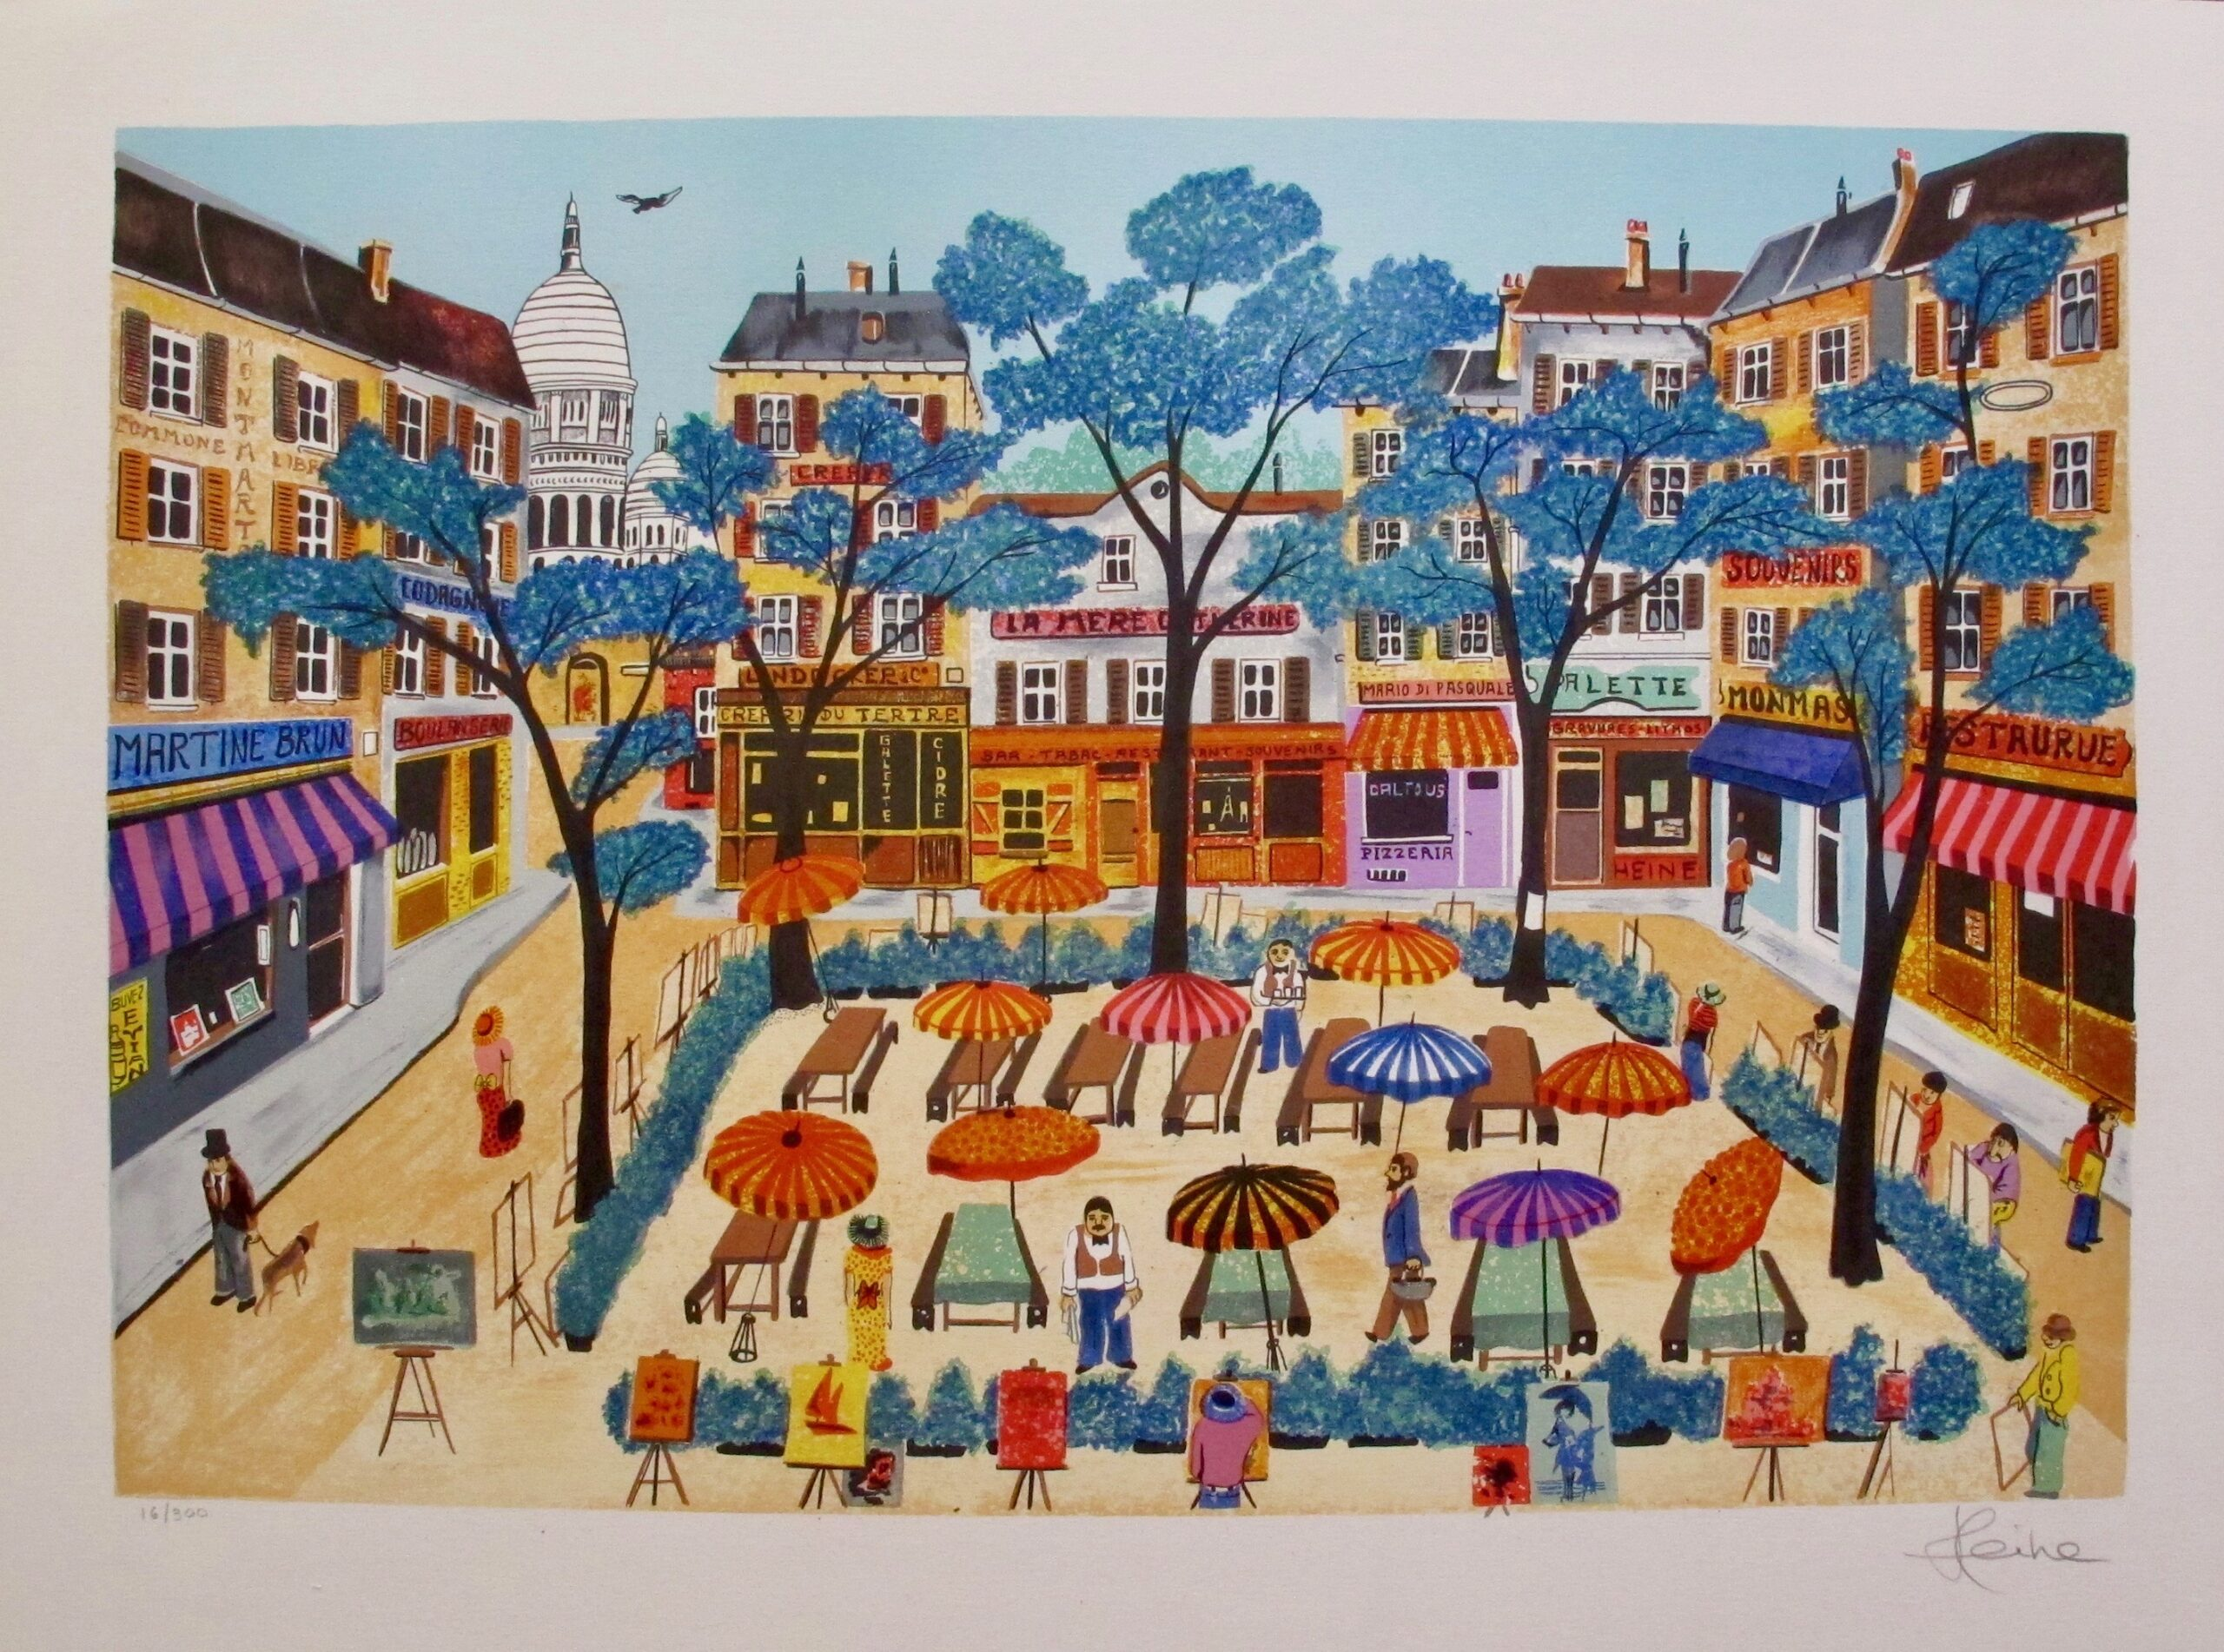 This is a lithograph by French artist Heine titled MONTMARTE.